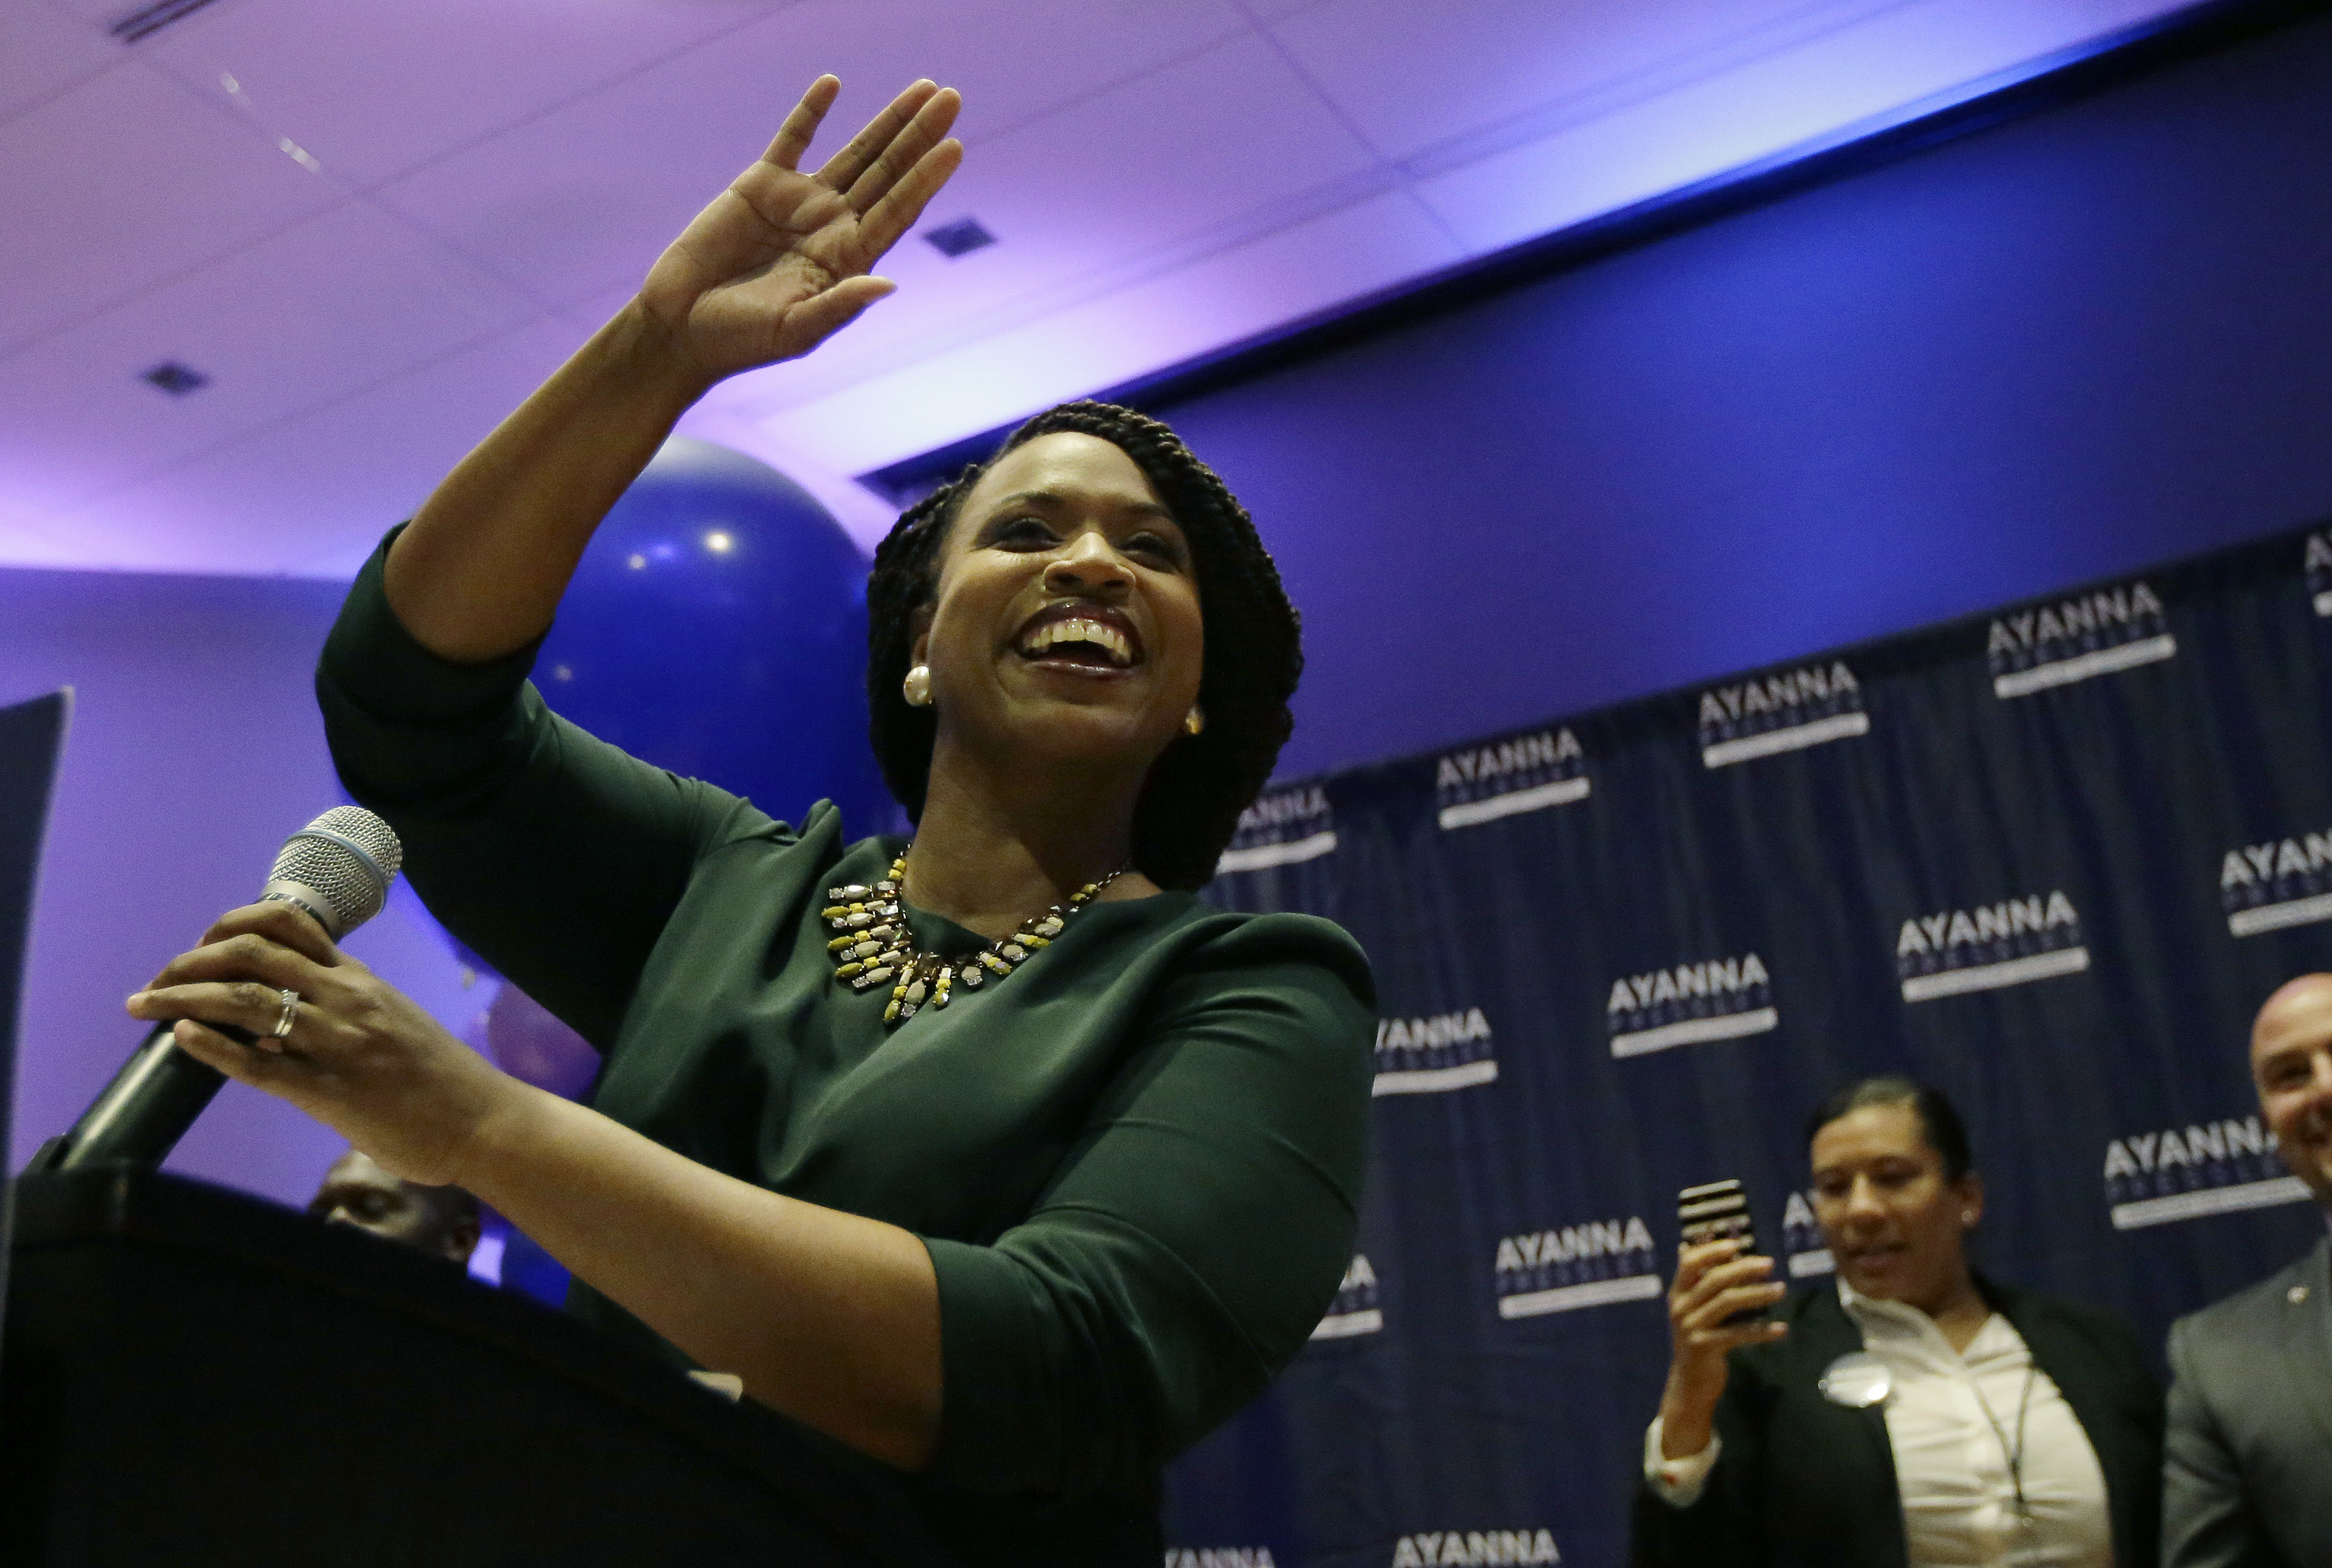 Ayanna Pressley celebrates her victory in the Congressional House Democratic primary in Boston, Mass. on Sept. 4, 2018.